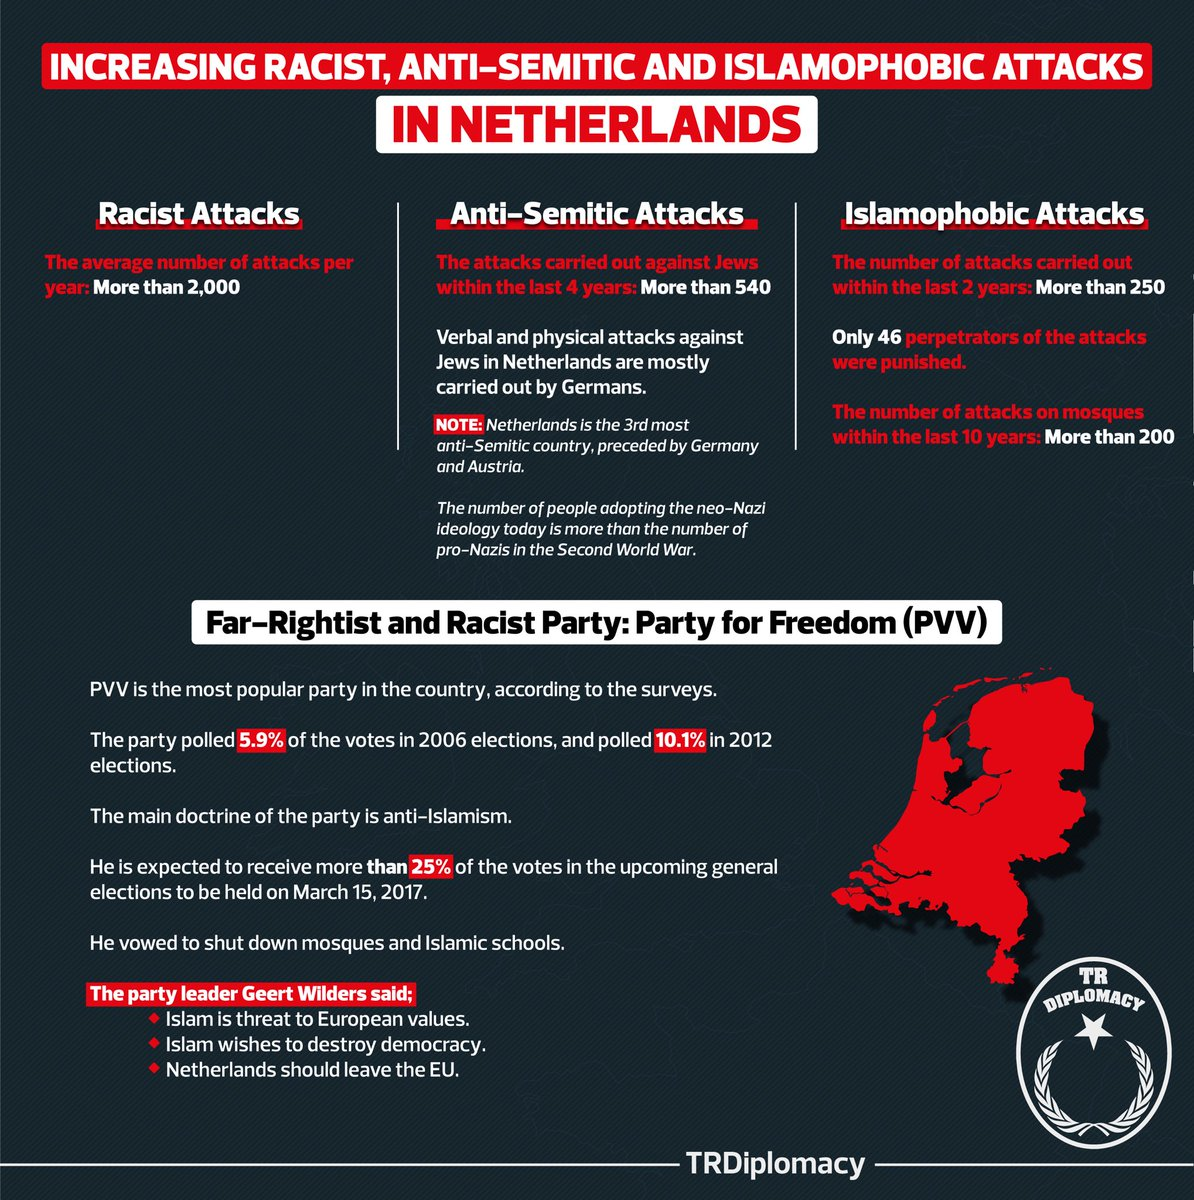 Racist, anti-Semitic and Islamophobic attacks in Netherlands puts European democracy at stake.